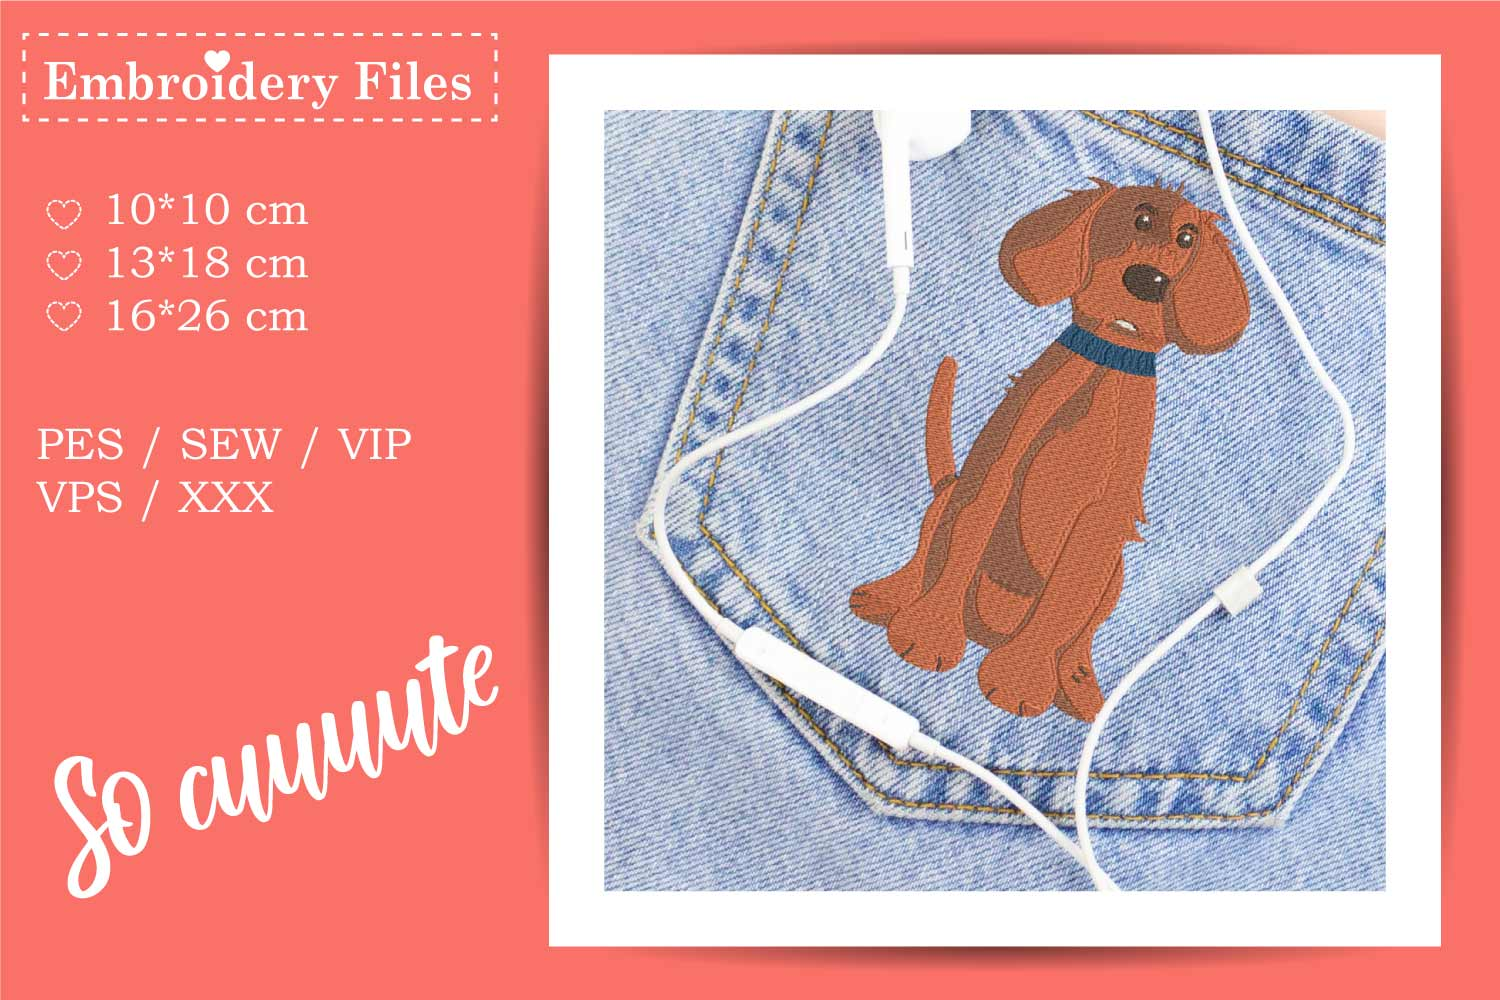 Dogs - Mini Bundle - Embroidery Files for Beginners example image 7